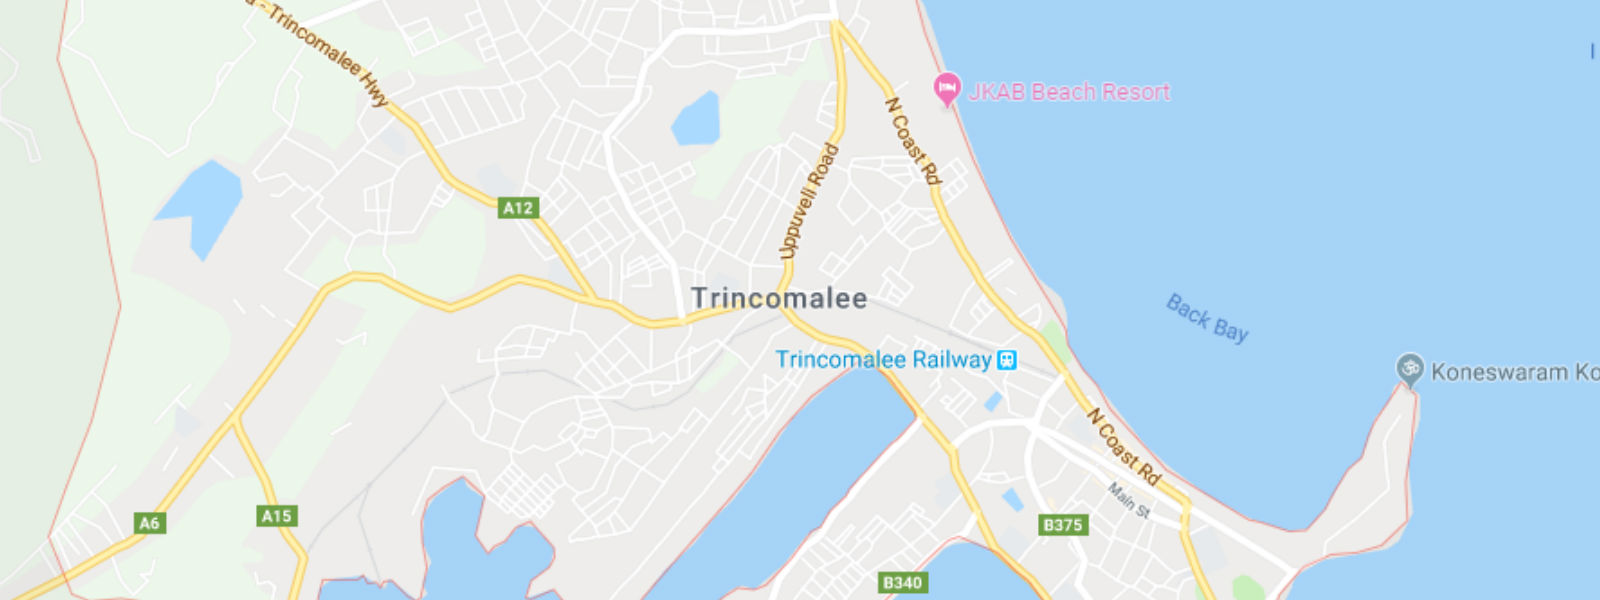 Trincomalee port to be turned into a industrial and tourism zone